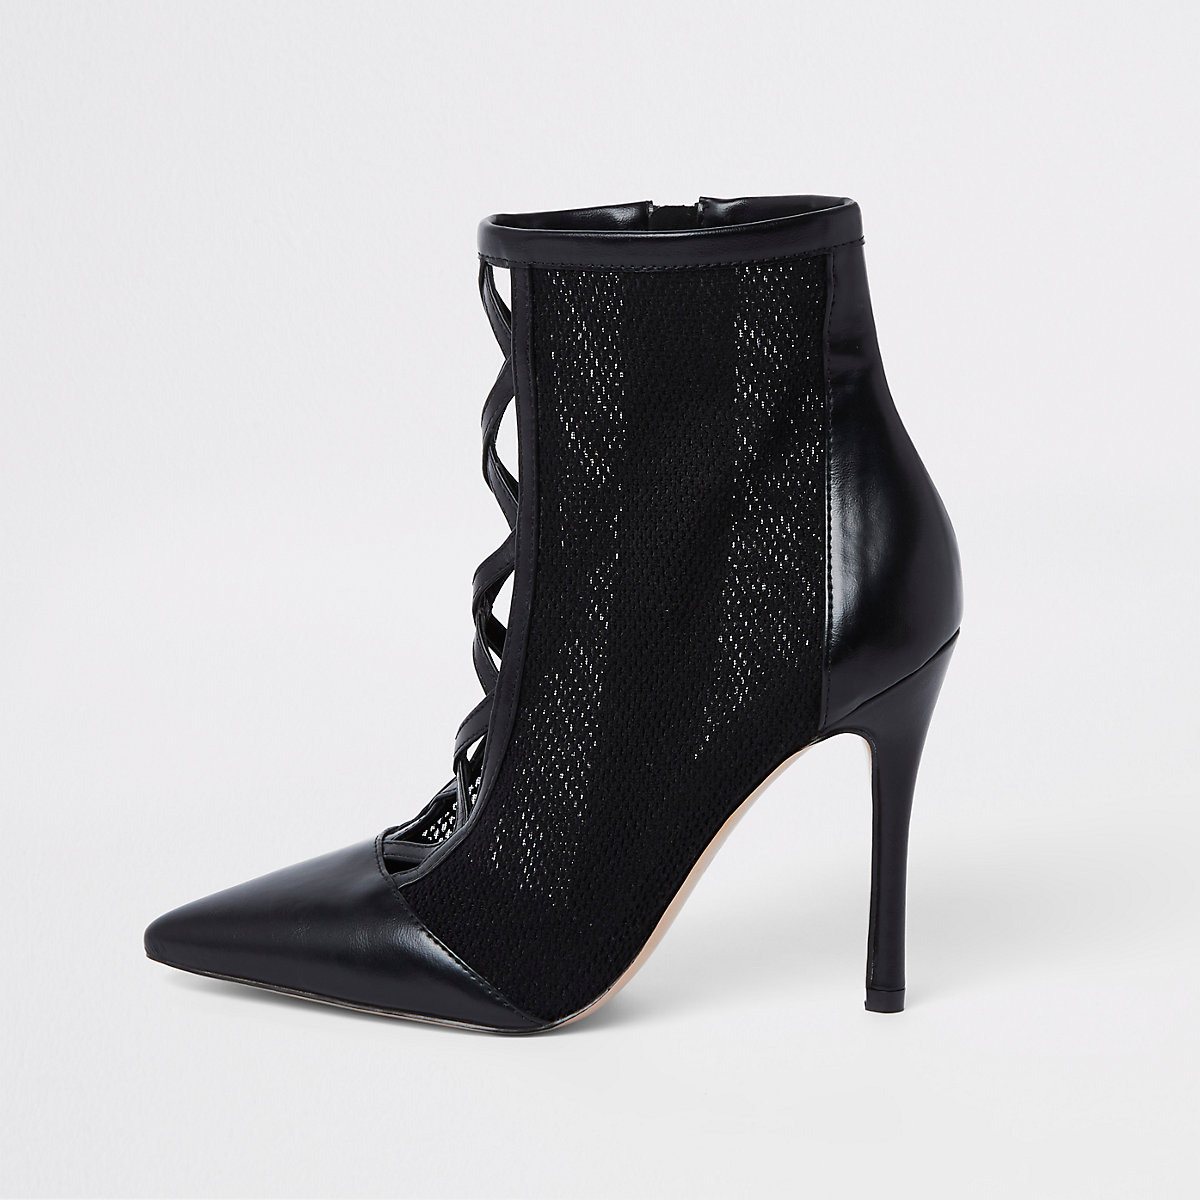 Black mesh stiletto heel ankle boots